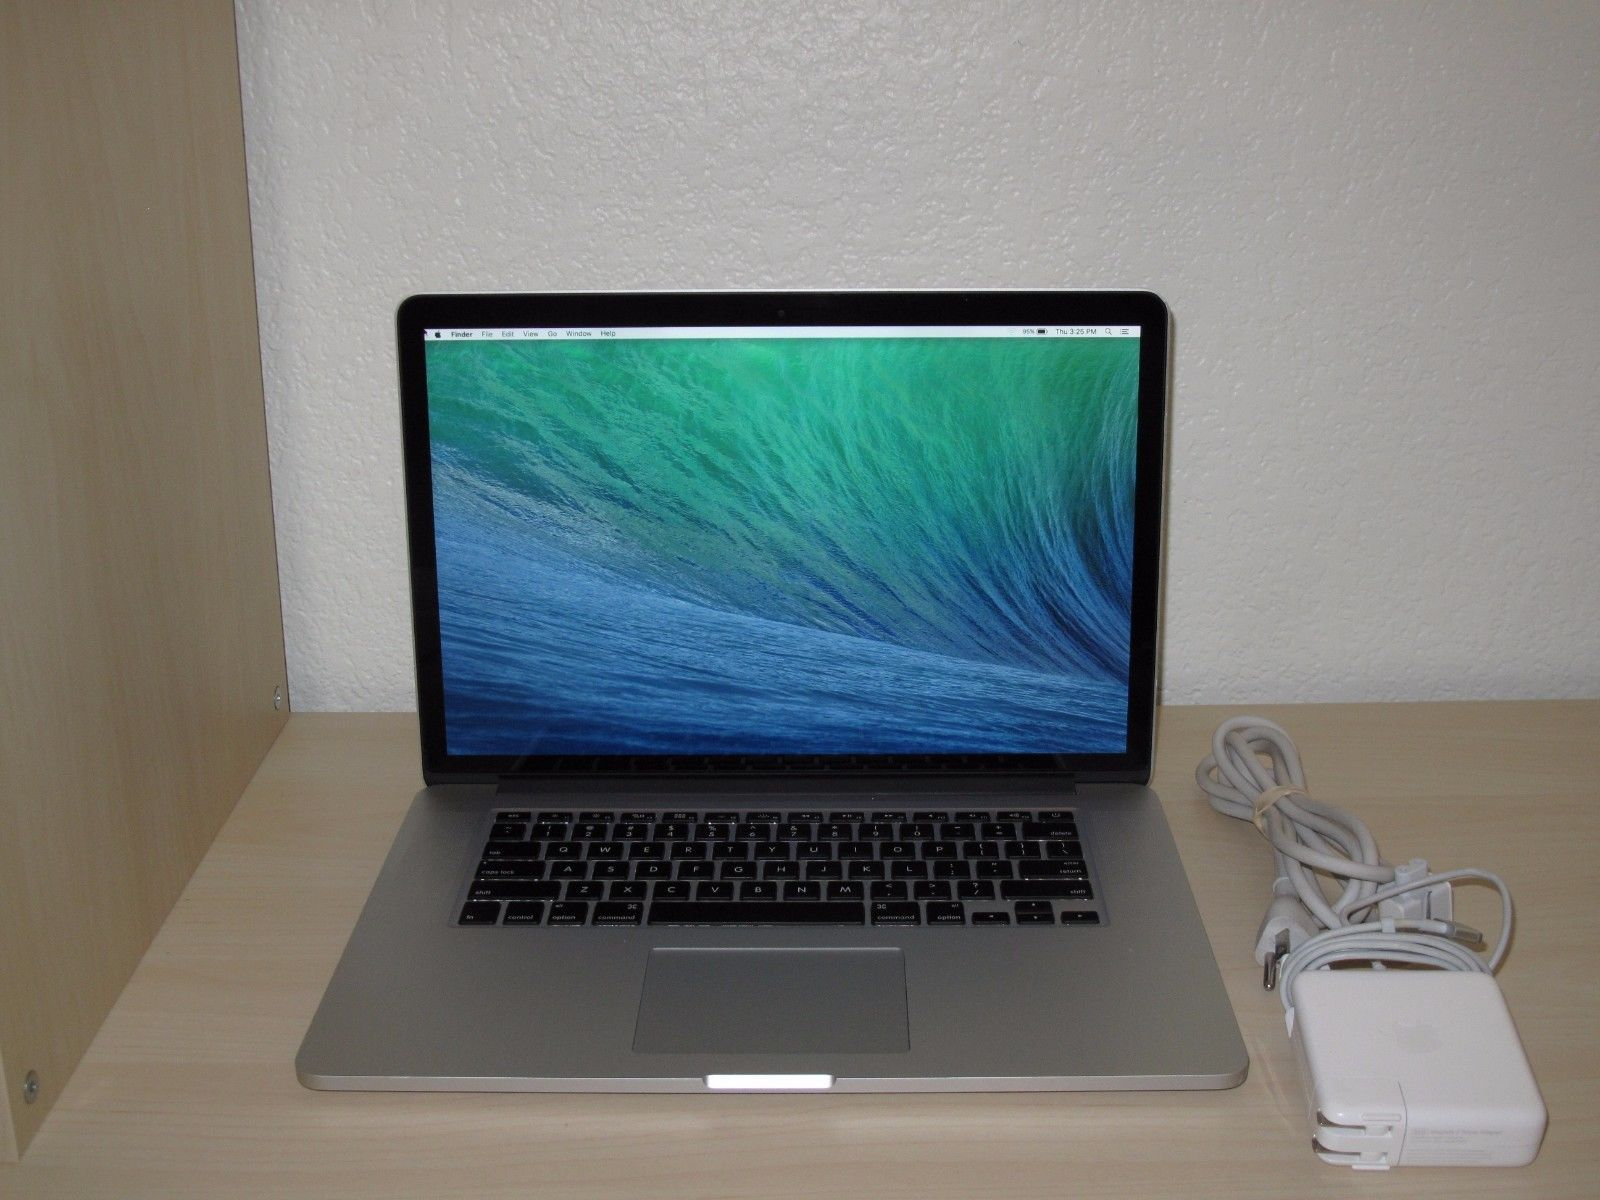 MacBook Pro 15inch Late 2013 Core i7-4850HQ 2.3 GHz Retina Late 2013 15 - BTO CTO - MacBookPro11,2 - A1398 - 2674